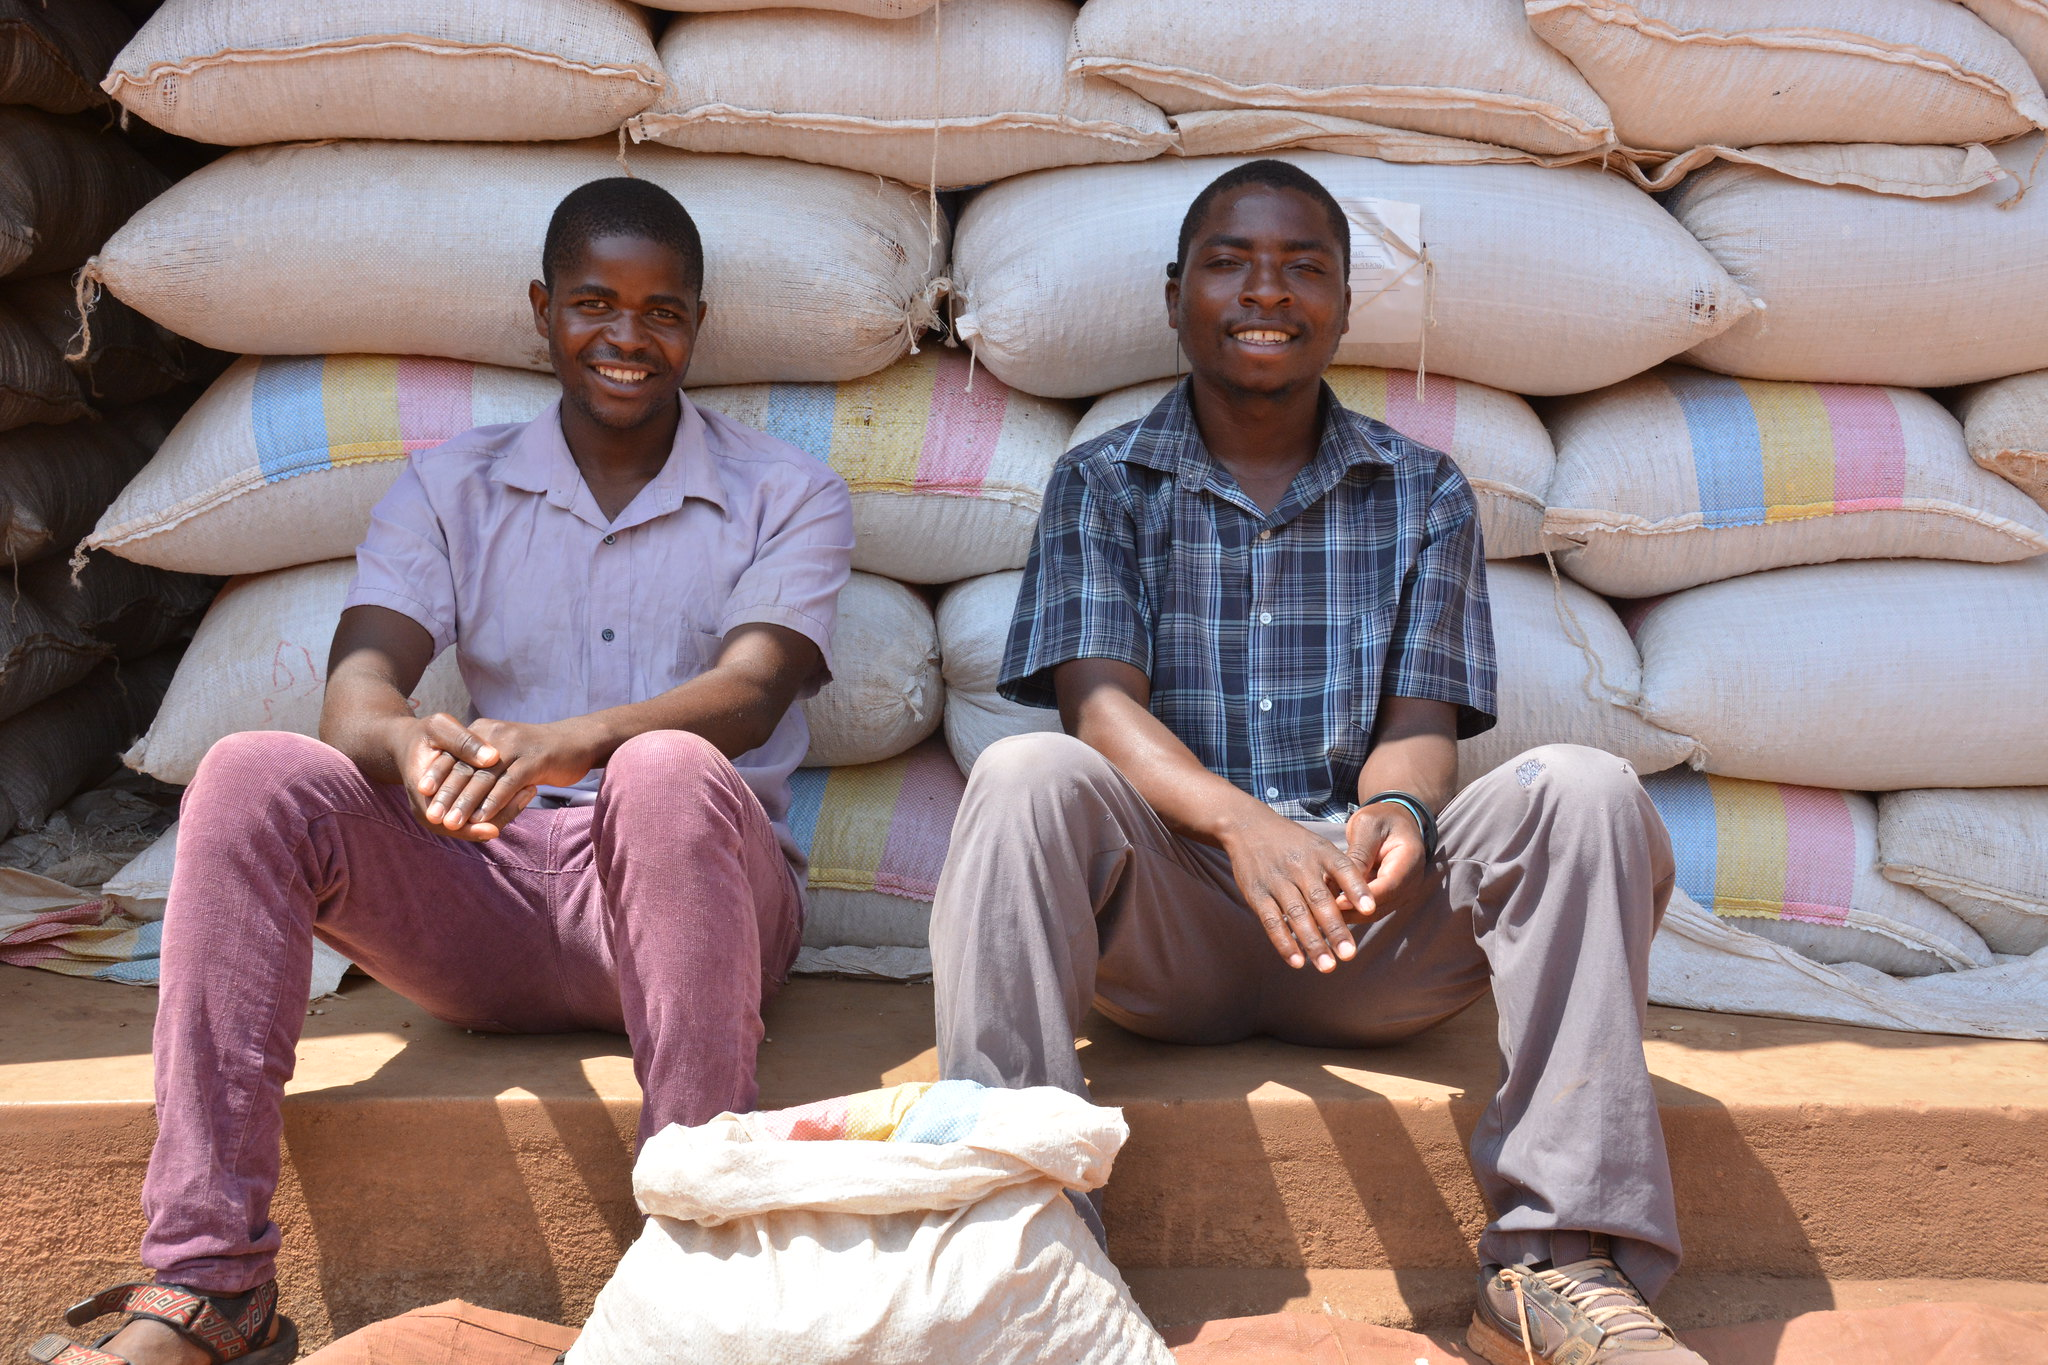 Two men sit in front of a stack of large grain bags, grinning at the camera.